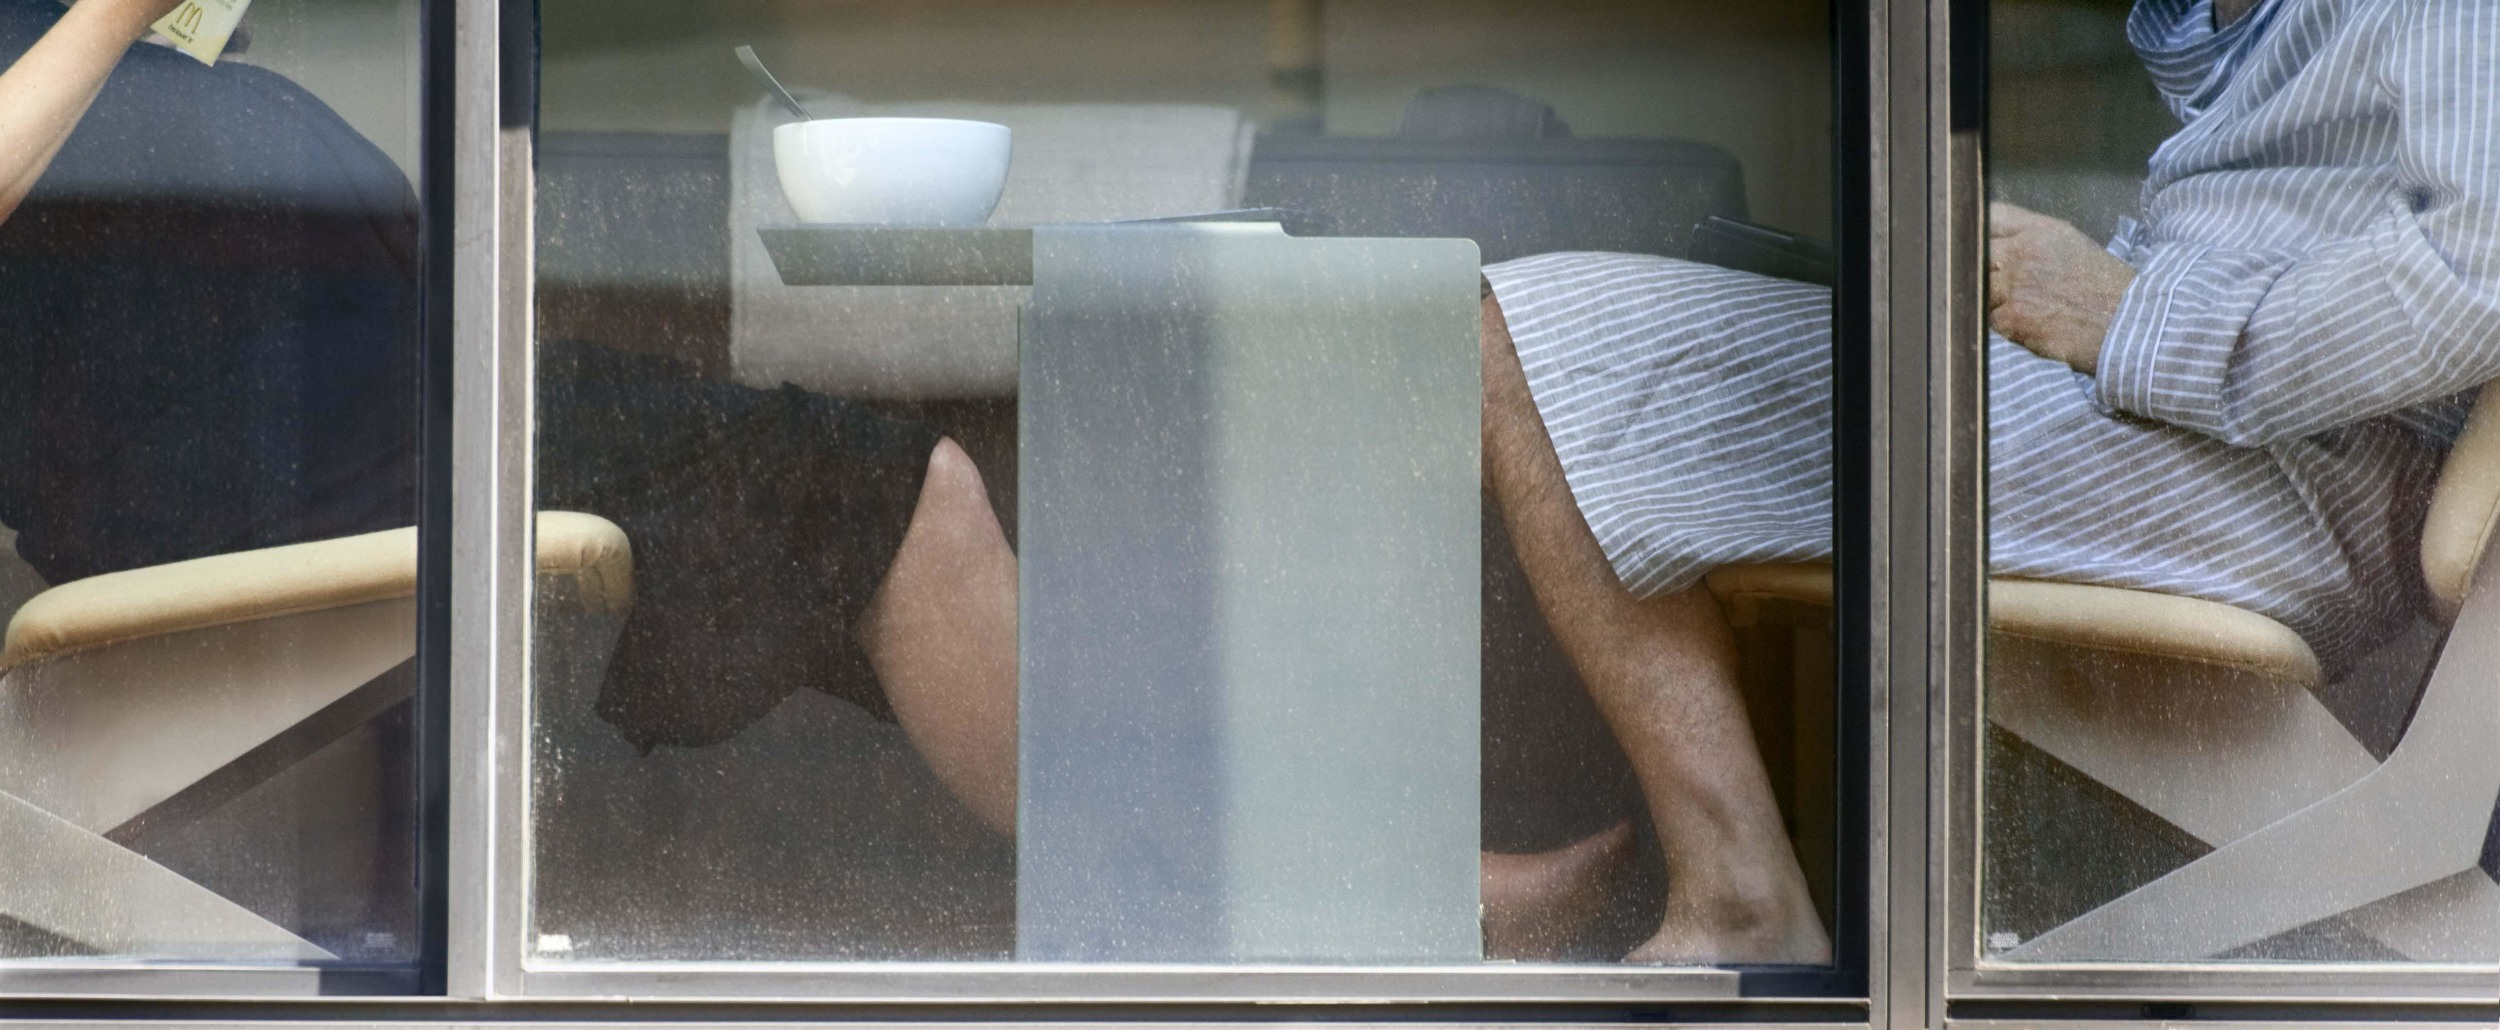 Arne Svenson The Neighbors #1, 2012, pigment print, 63 x 26 inches